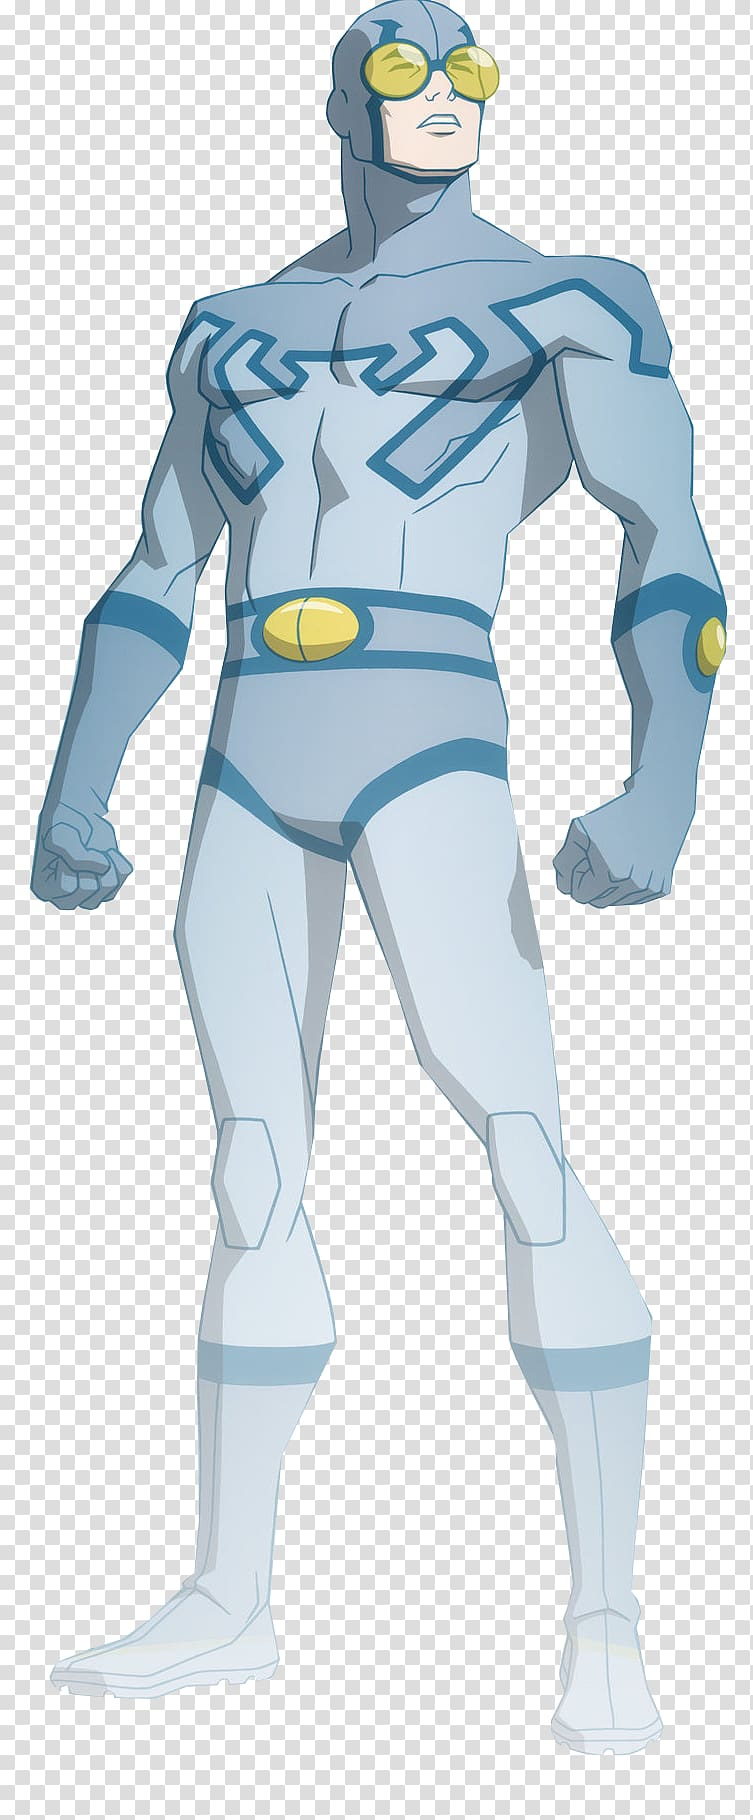 Ted kord clipart jpg black and white library Ted Kord Blue Beetle Jaime Reyes Green Arrow Wally West ... jpg black and white library